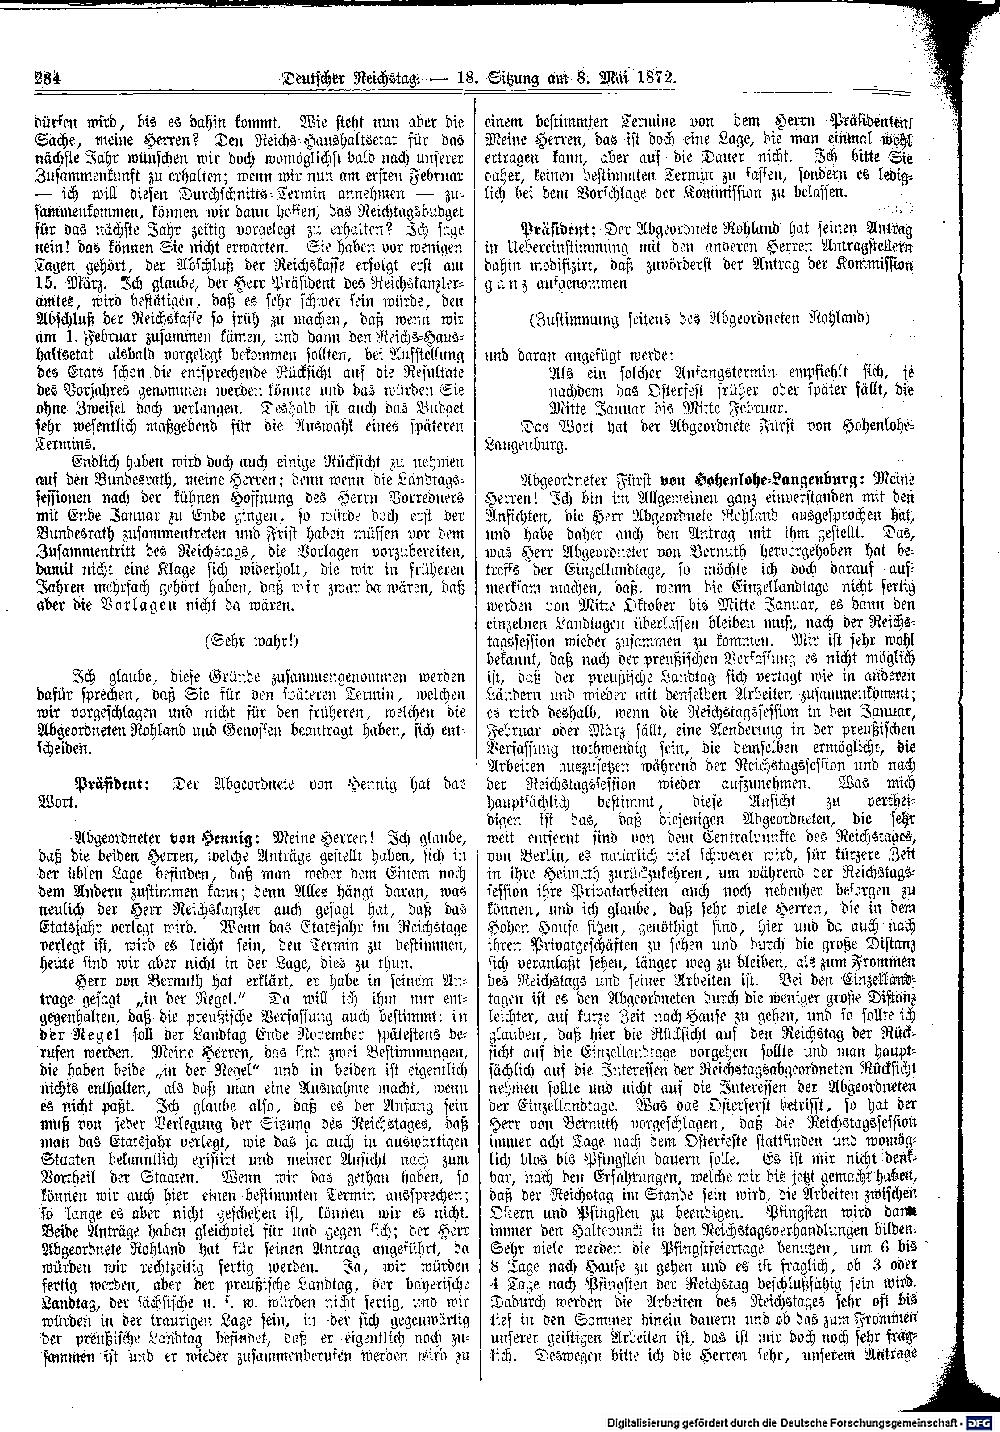 Scan of page 284